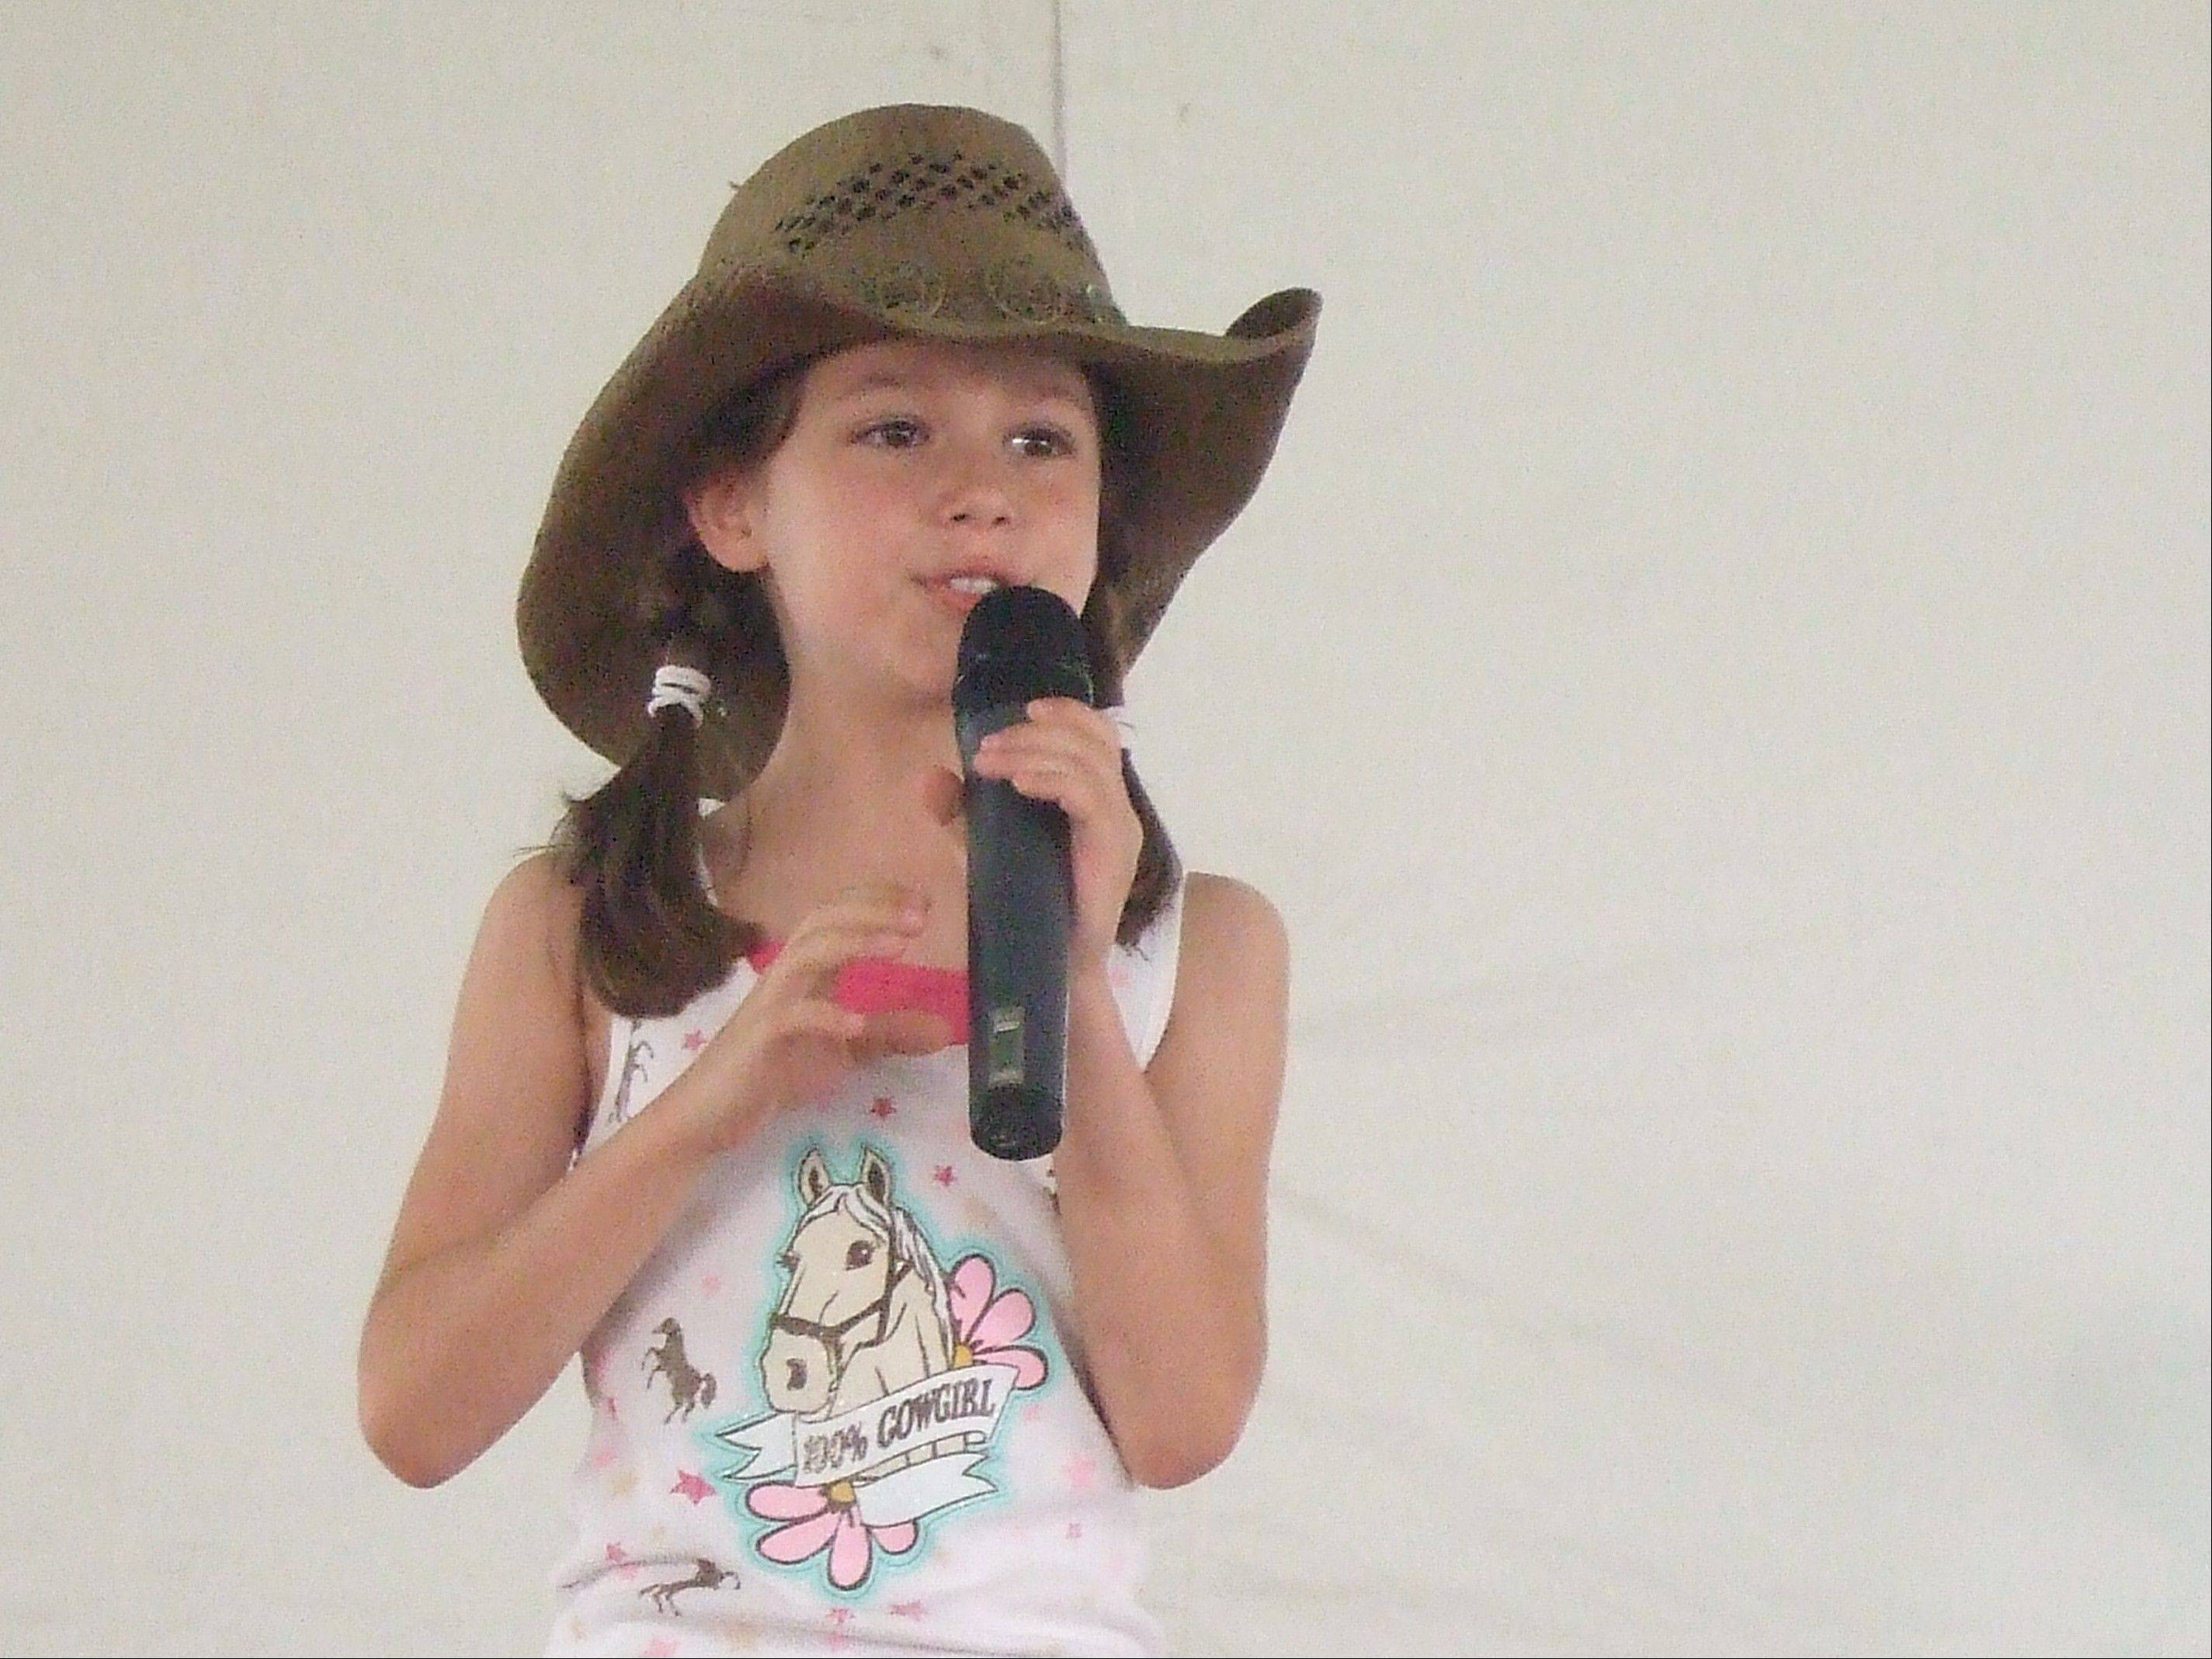 Shealeigh Voitl won the singing competition at the DuPage County Fair when she was 9.